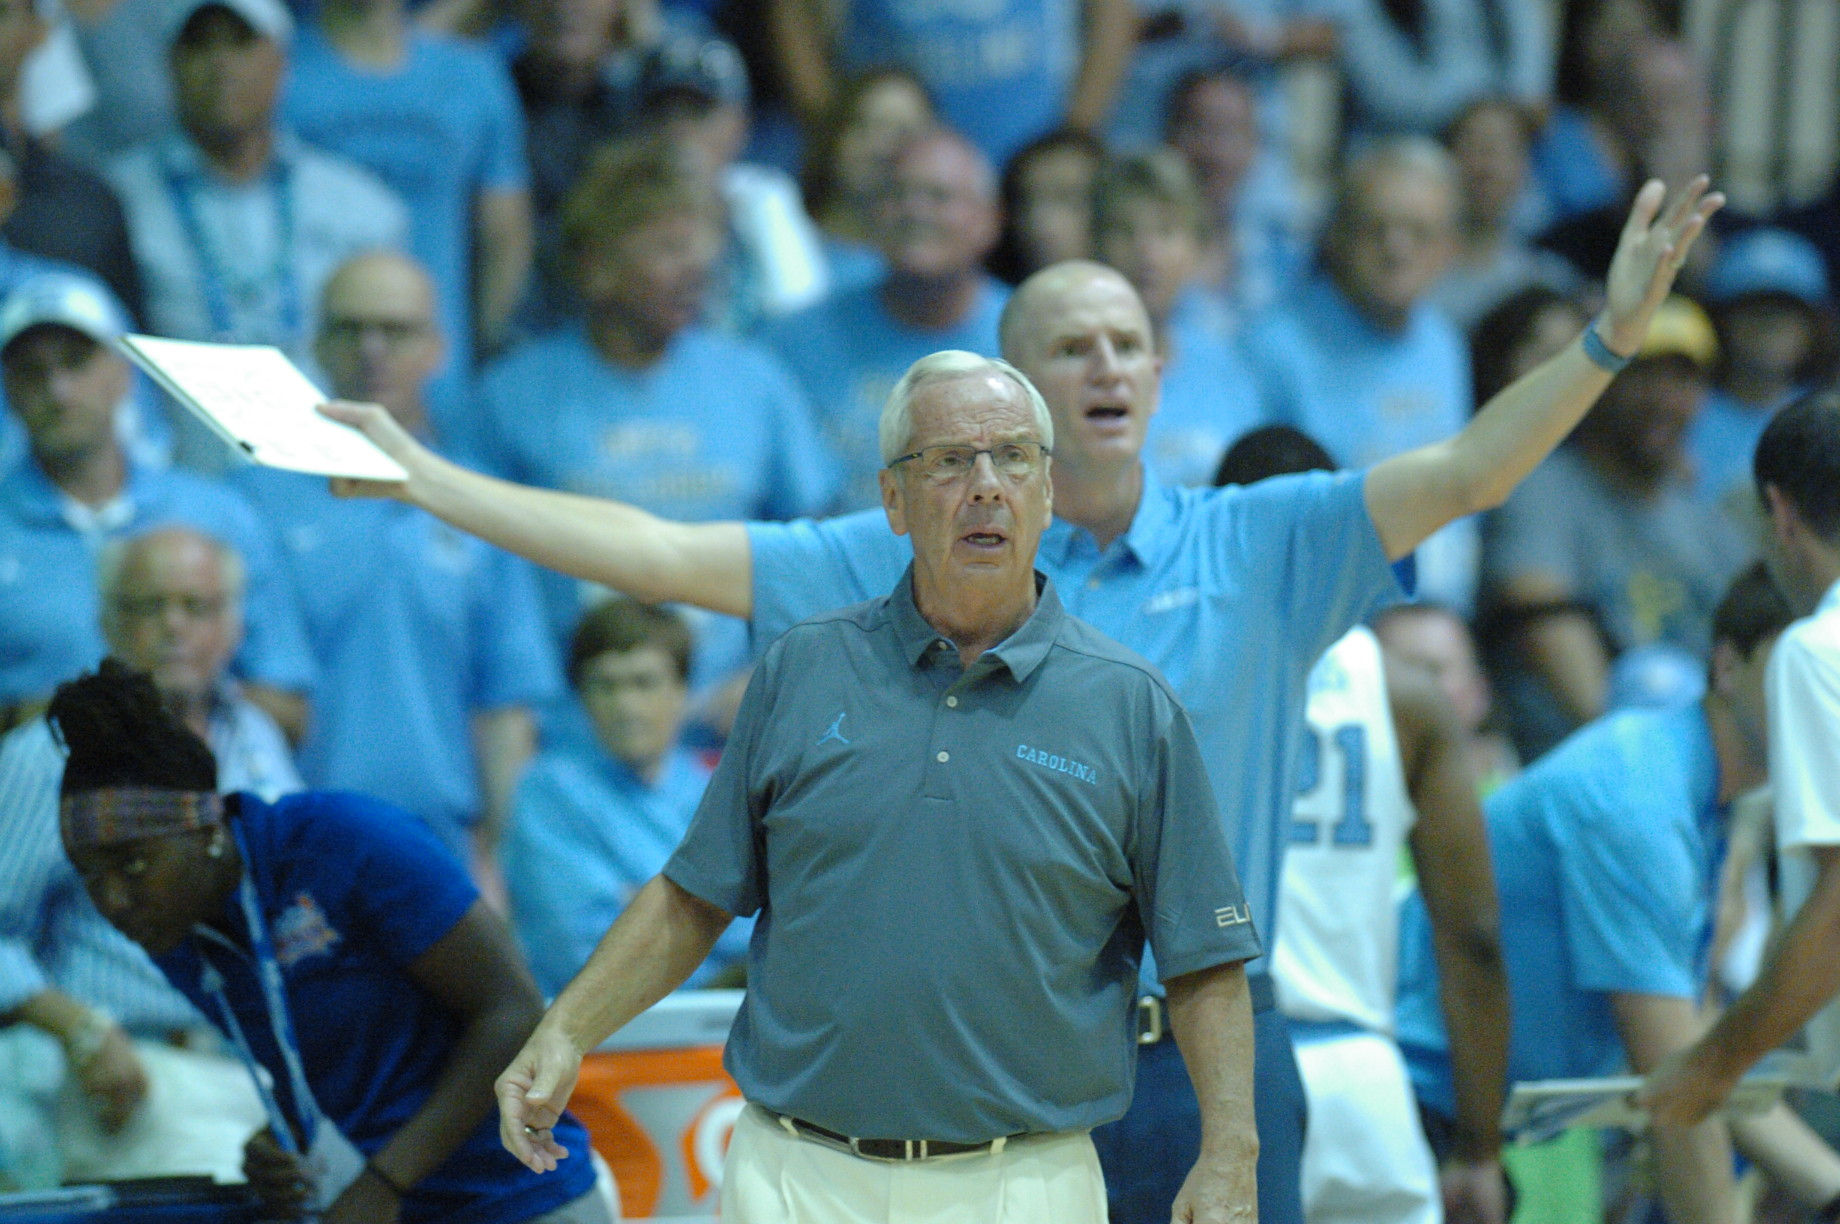 UNC Head Coach Roy Williams. Championship game between UW vs UNC at the 2016 Maui Jim Maui Invitational. PC: Joel B. Tamayo.